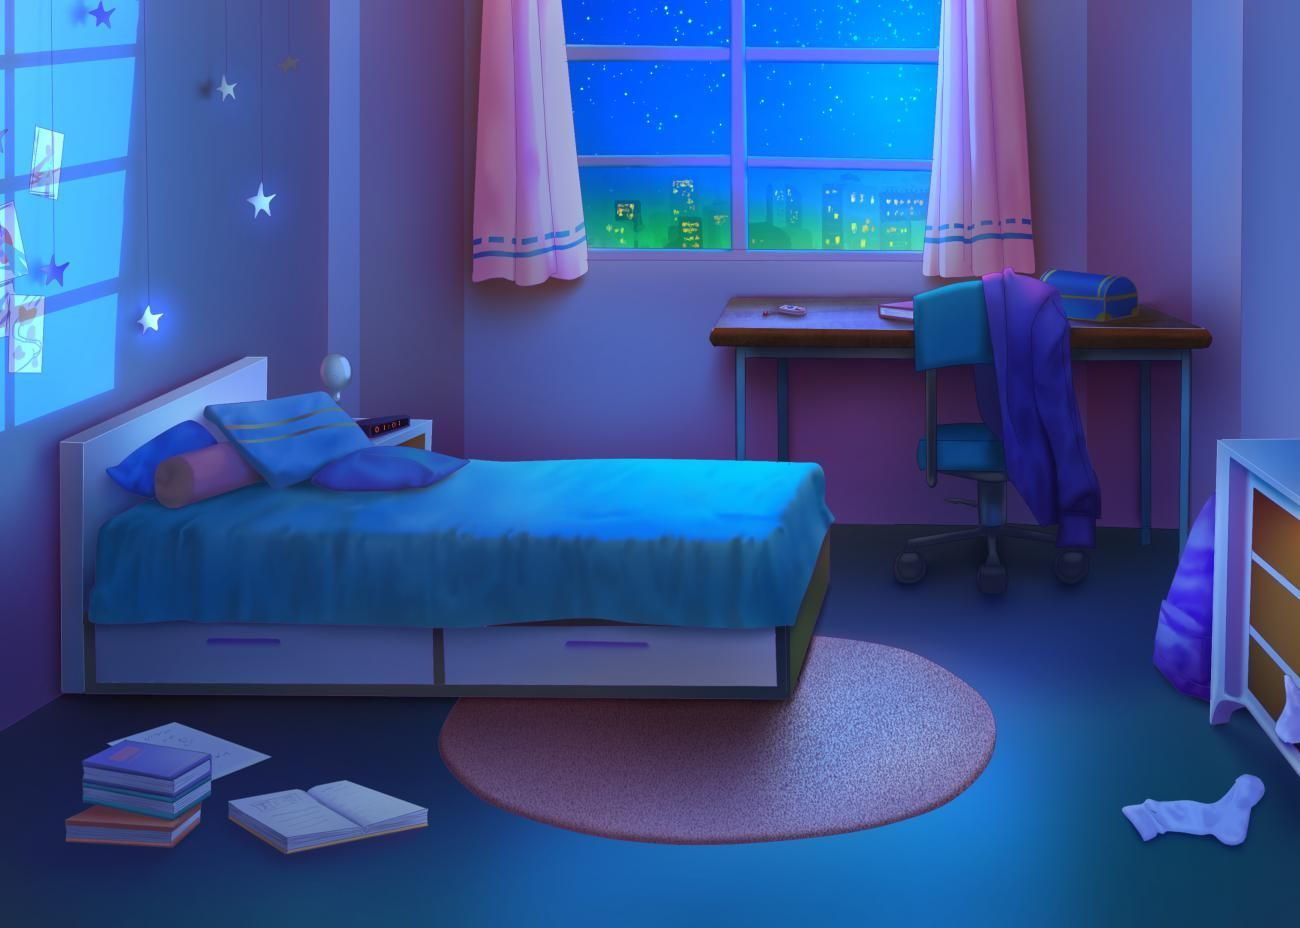 Room at night – Baby Shower Party